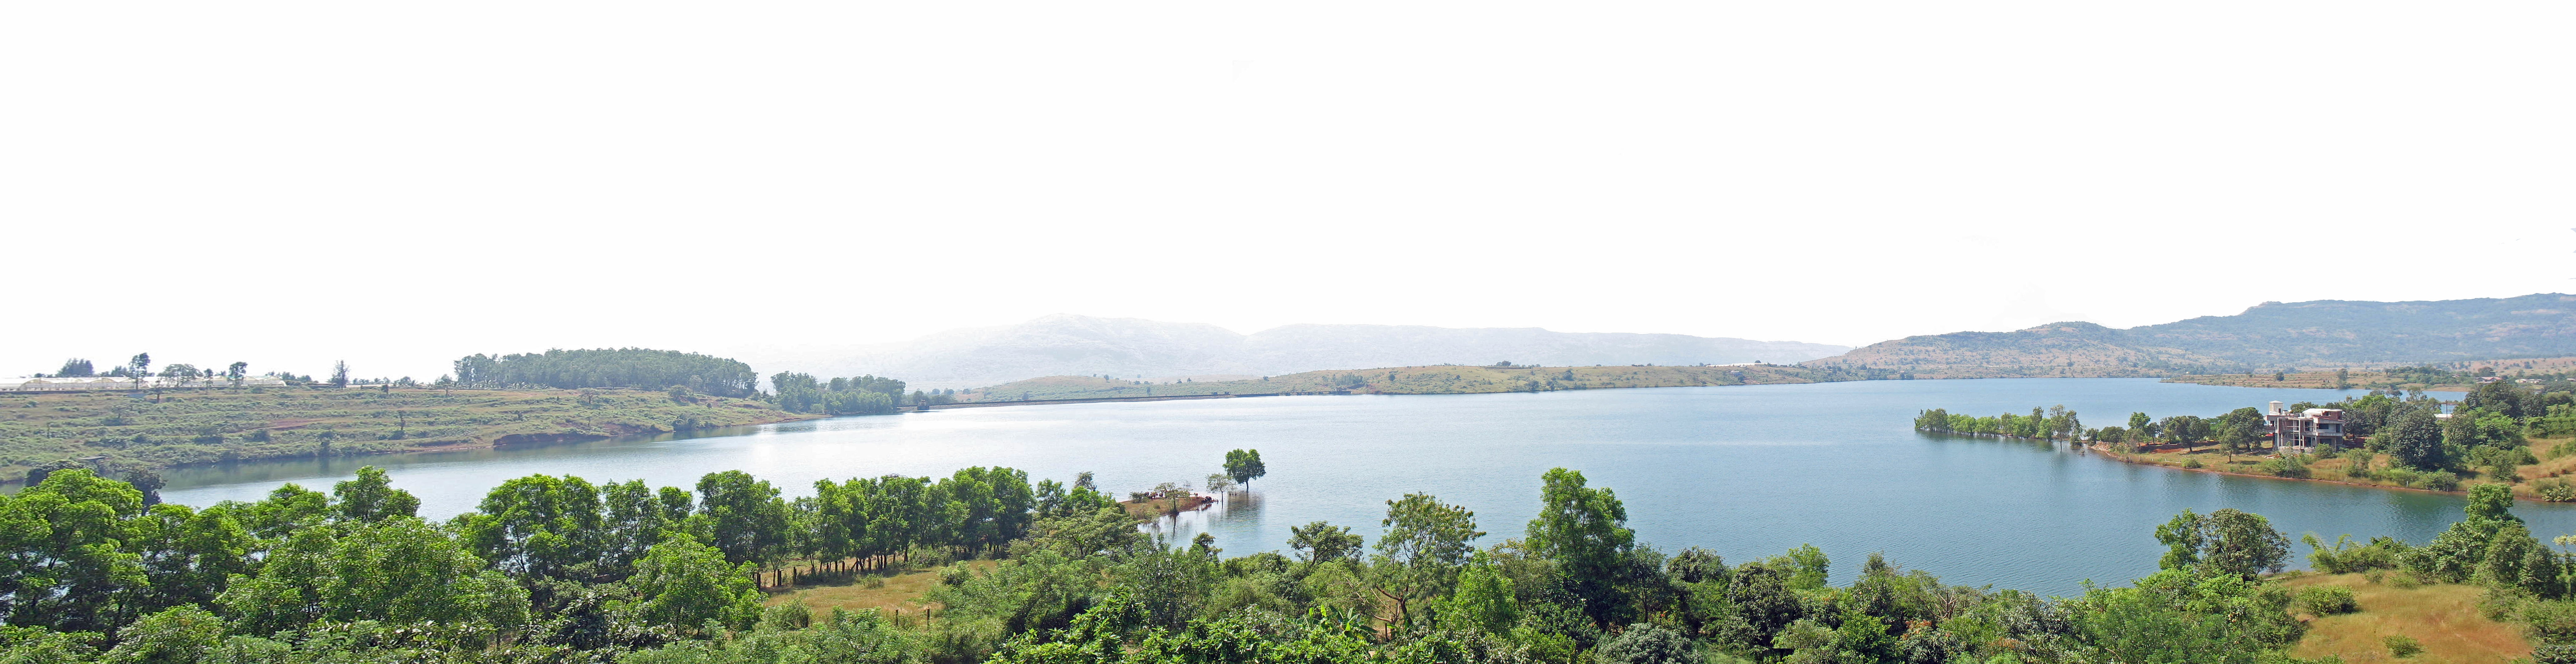 panorama of lake and trees